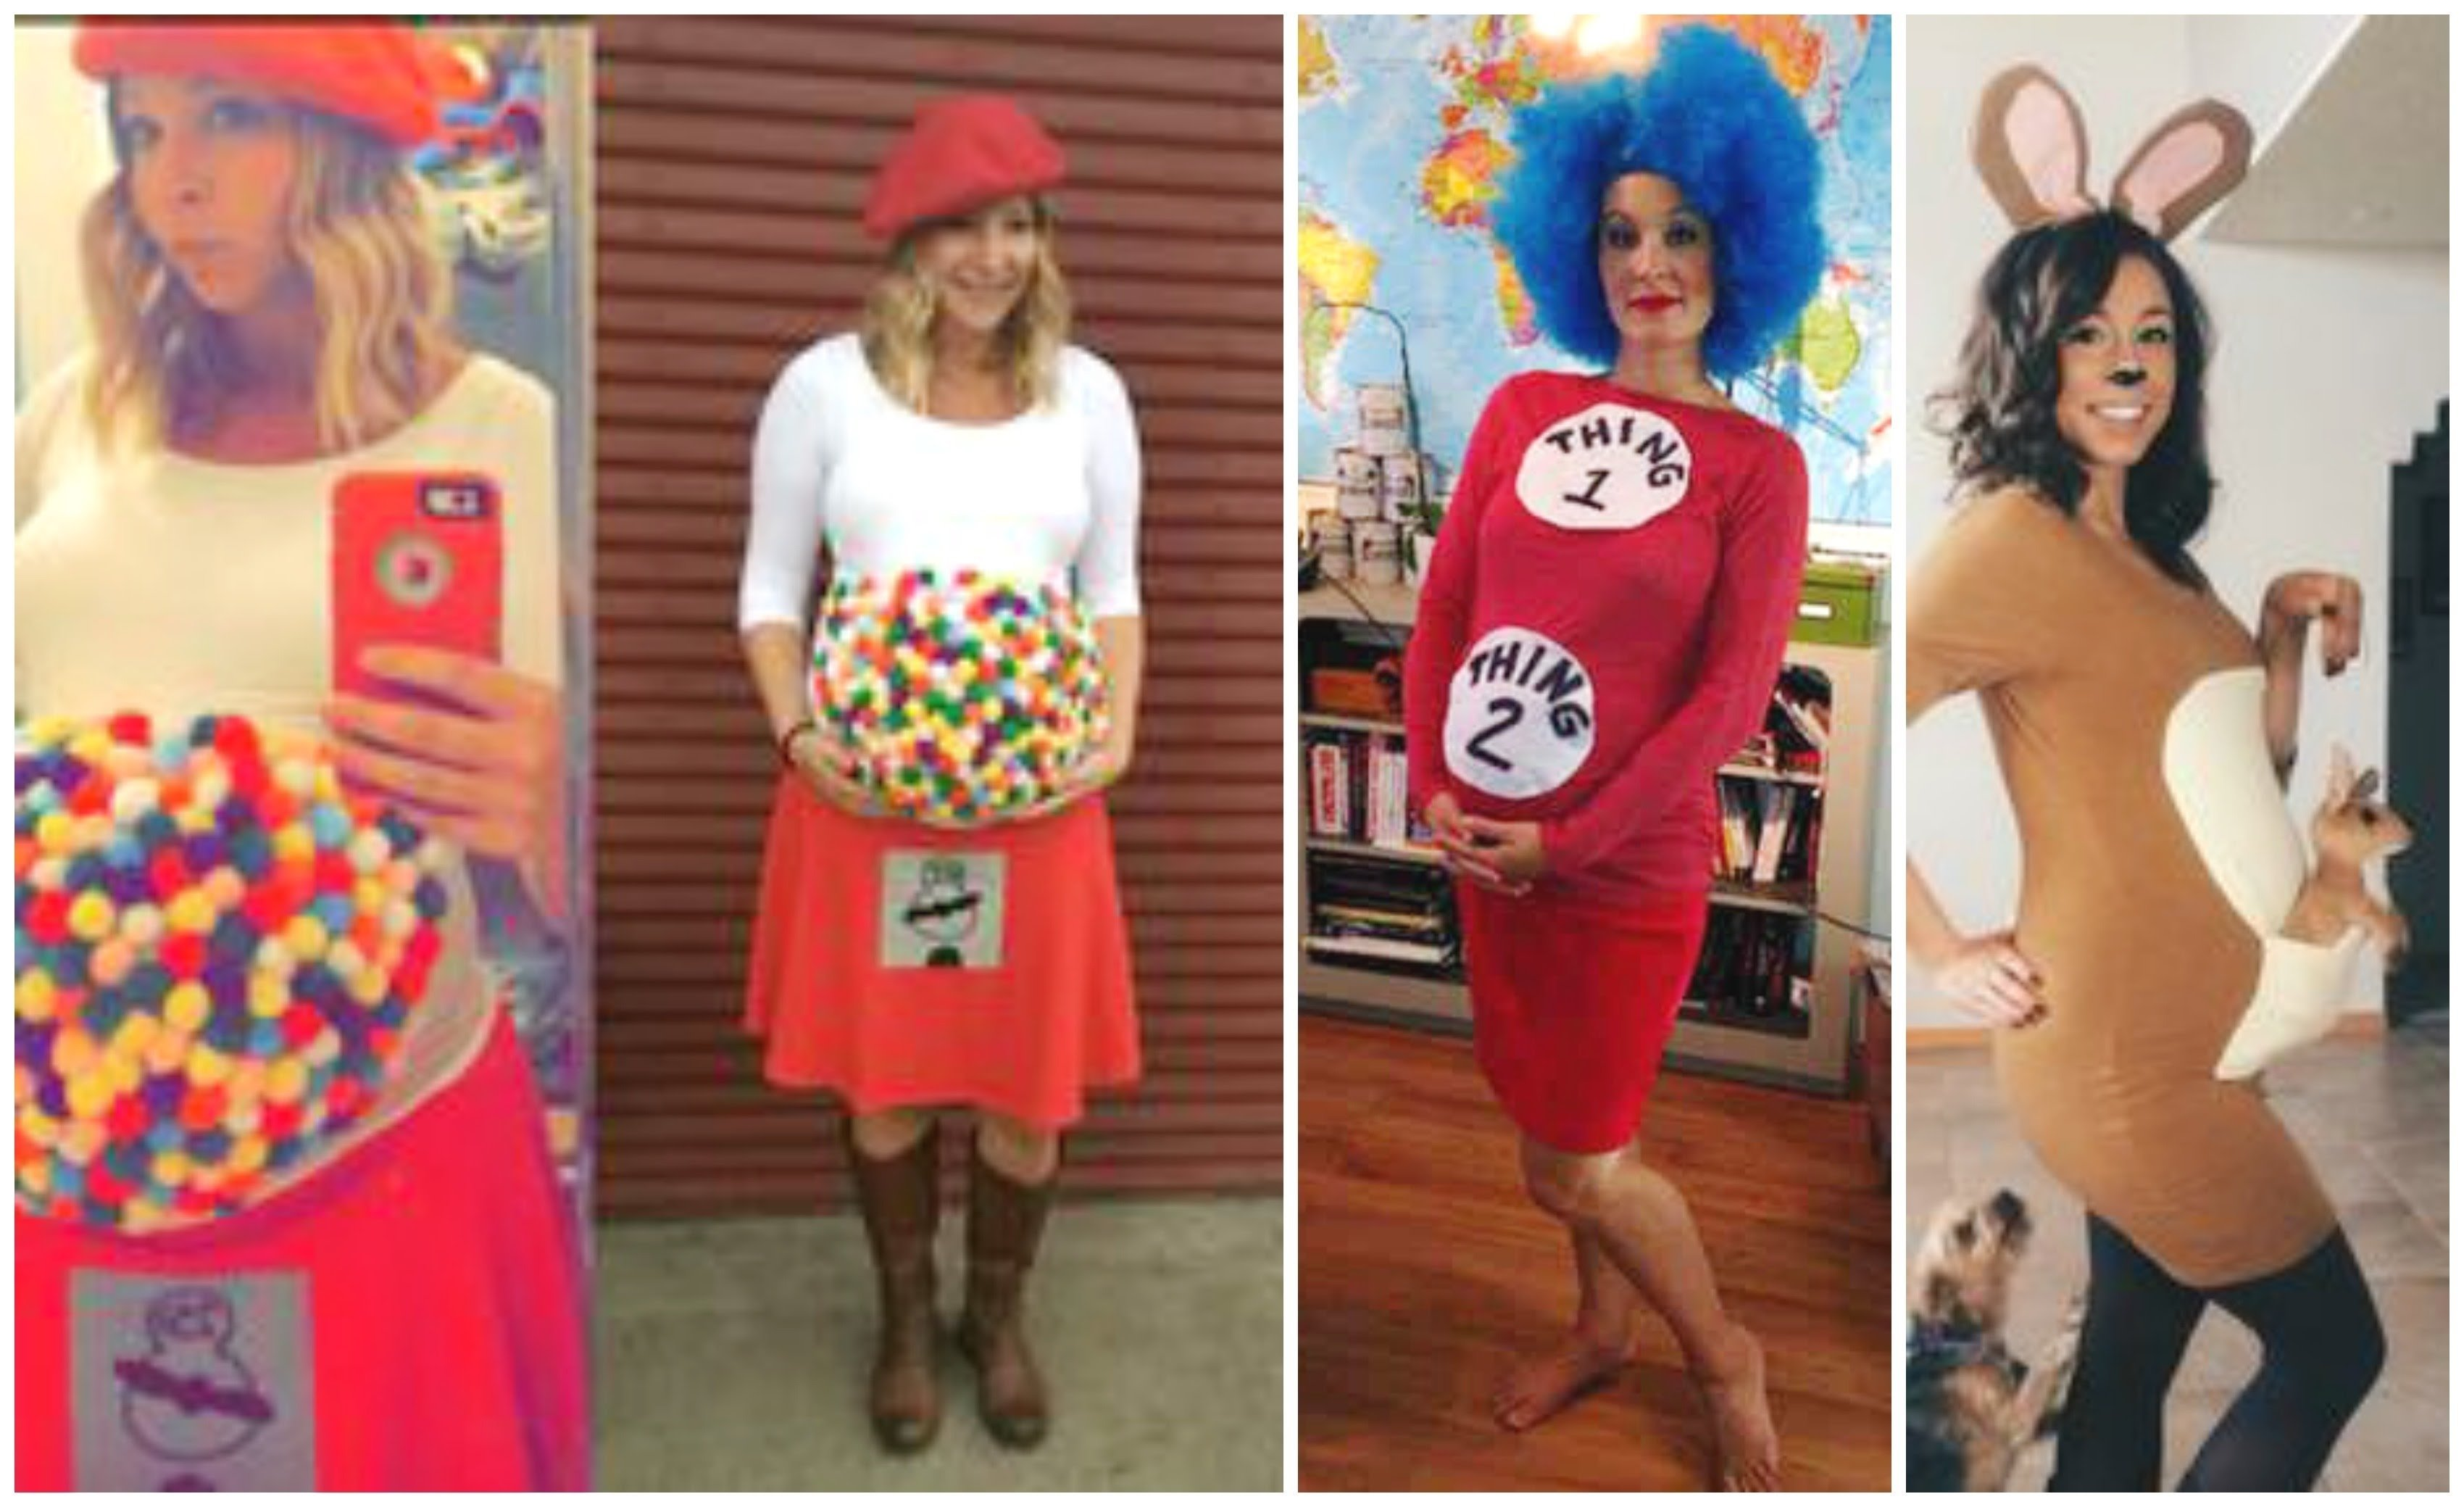 10 Cute Creative Ideas For Halloween Costumes creative maternity halloween costume ideas costume ideas for 9 2020